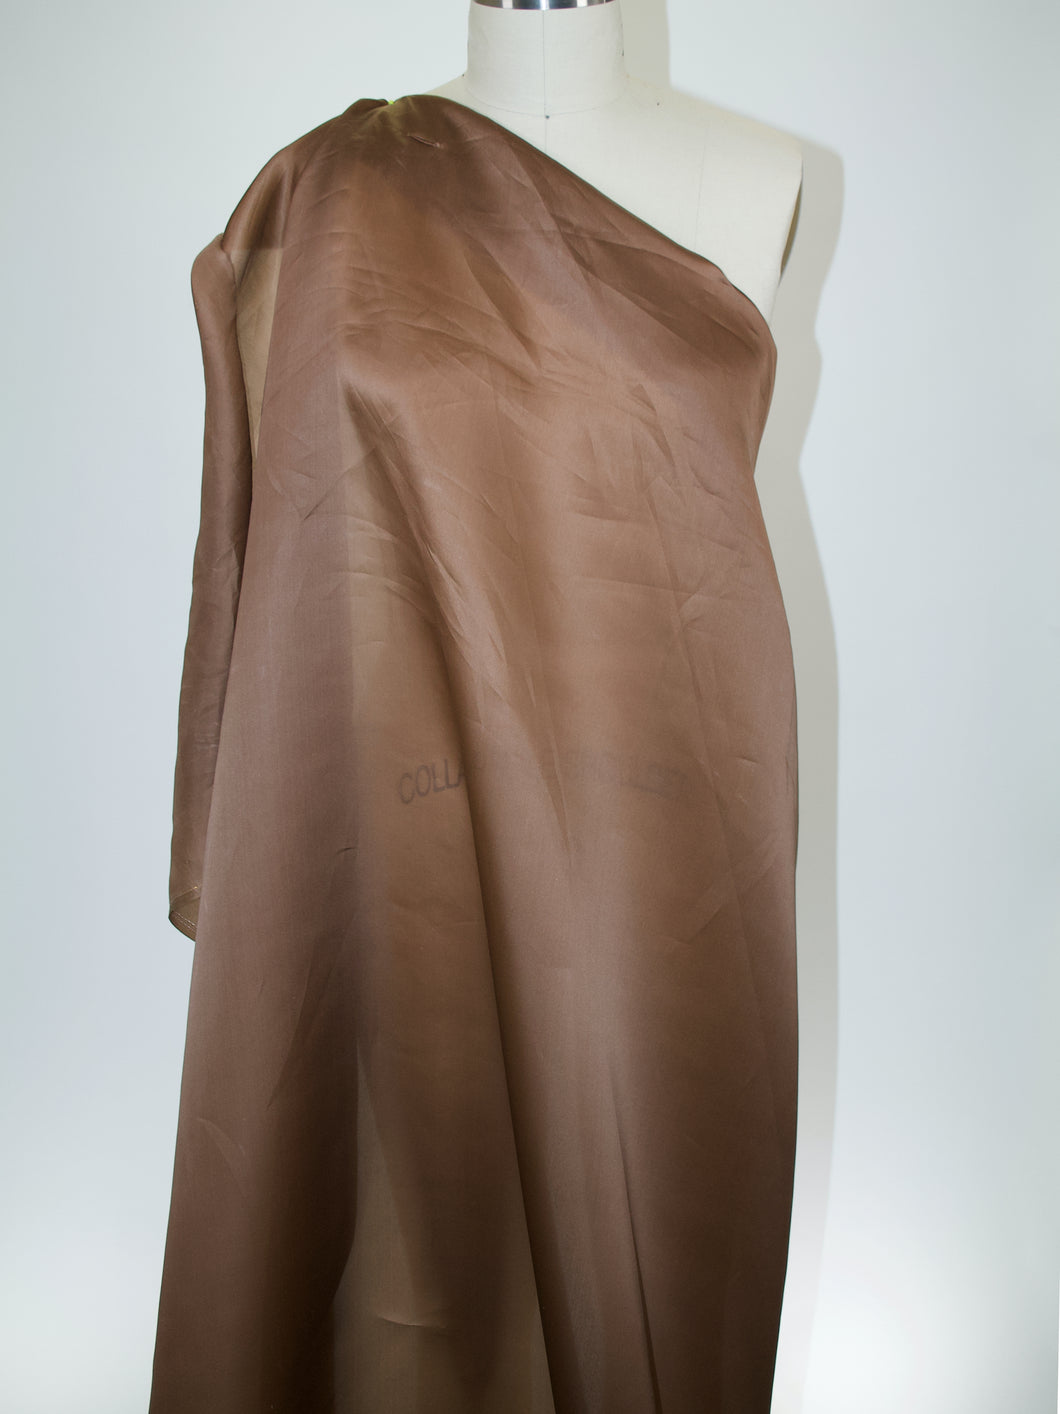 2 1/4 yards of Satin Faced Organza - Milk Chocolate